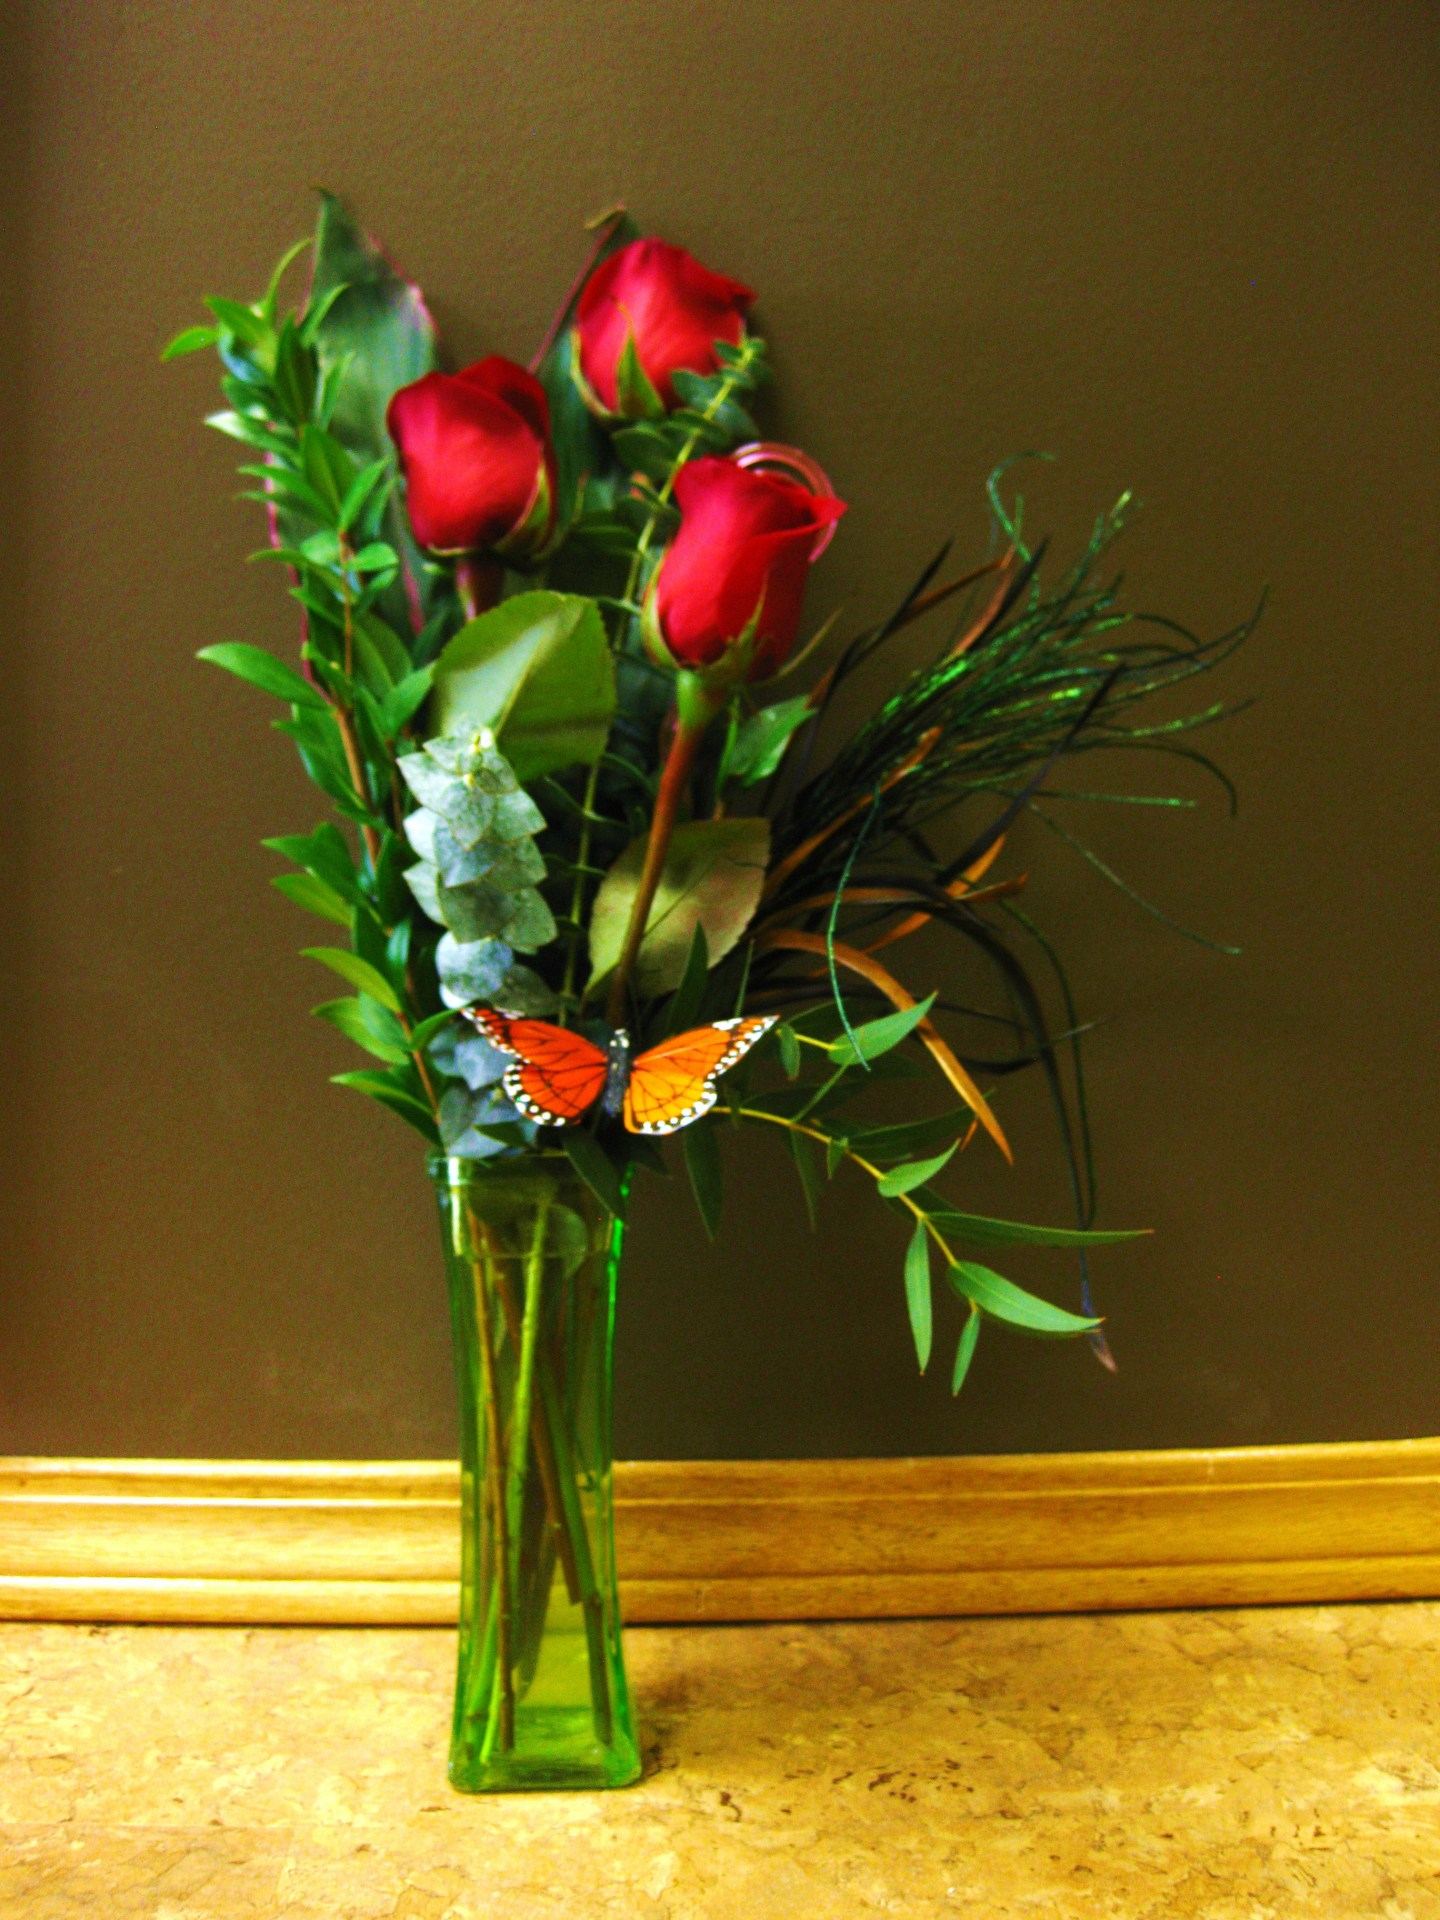 roses, happy, cheerful flowers, bouquet, entertainers, vase, lumsden, regina, craven, regina beach, buena vista